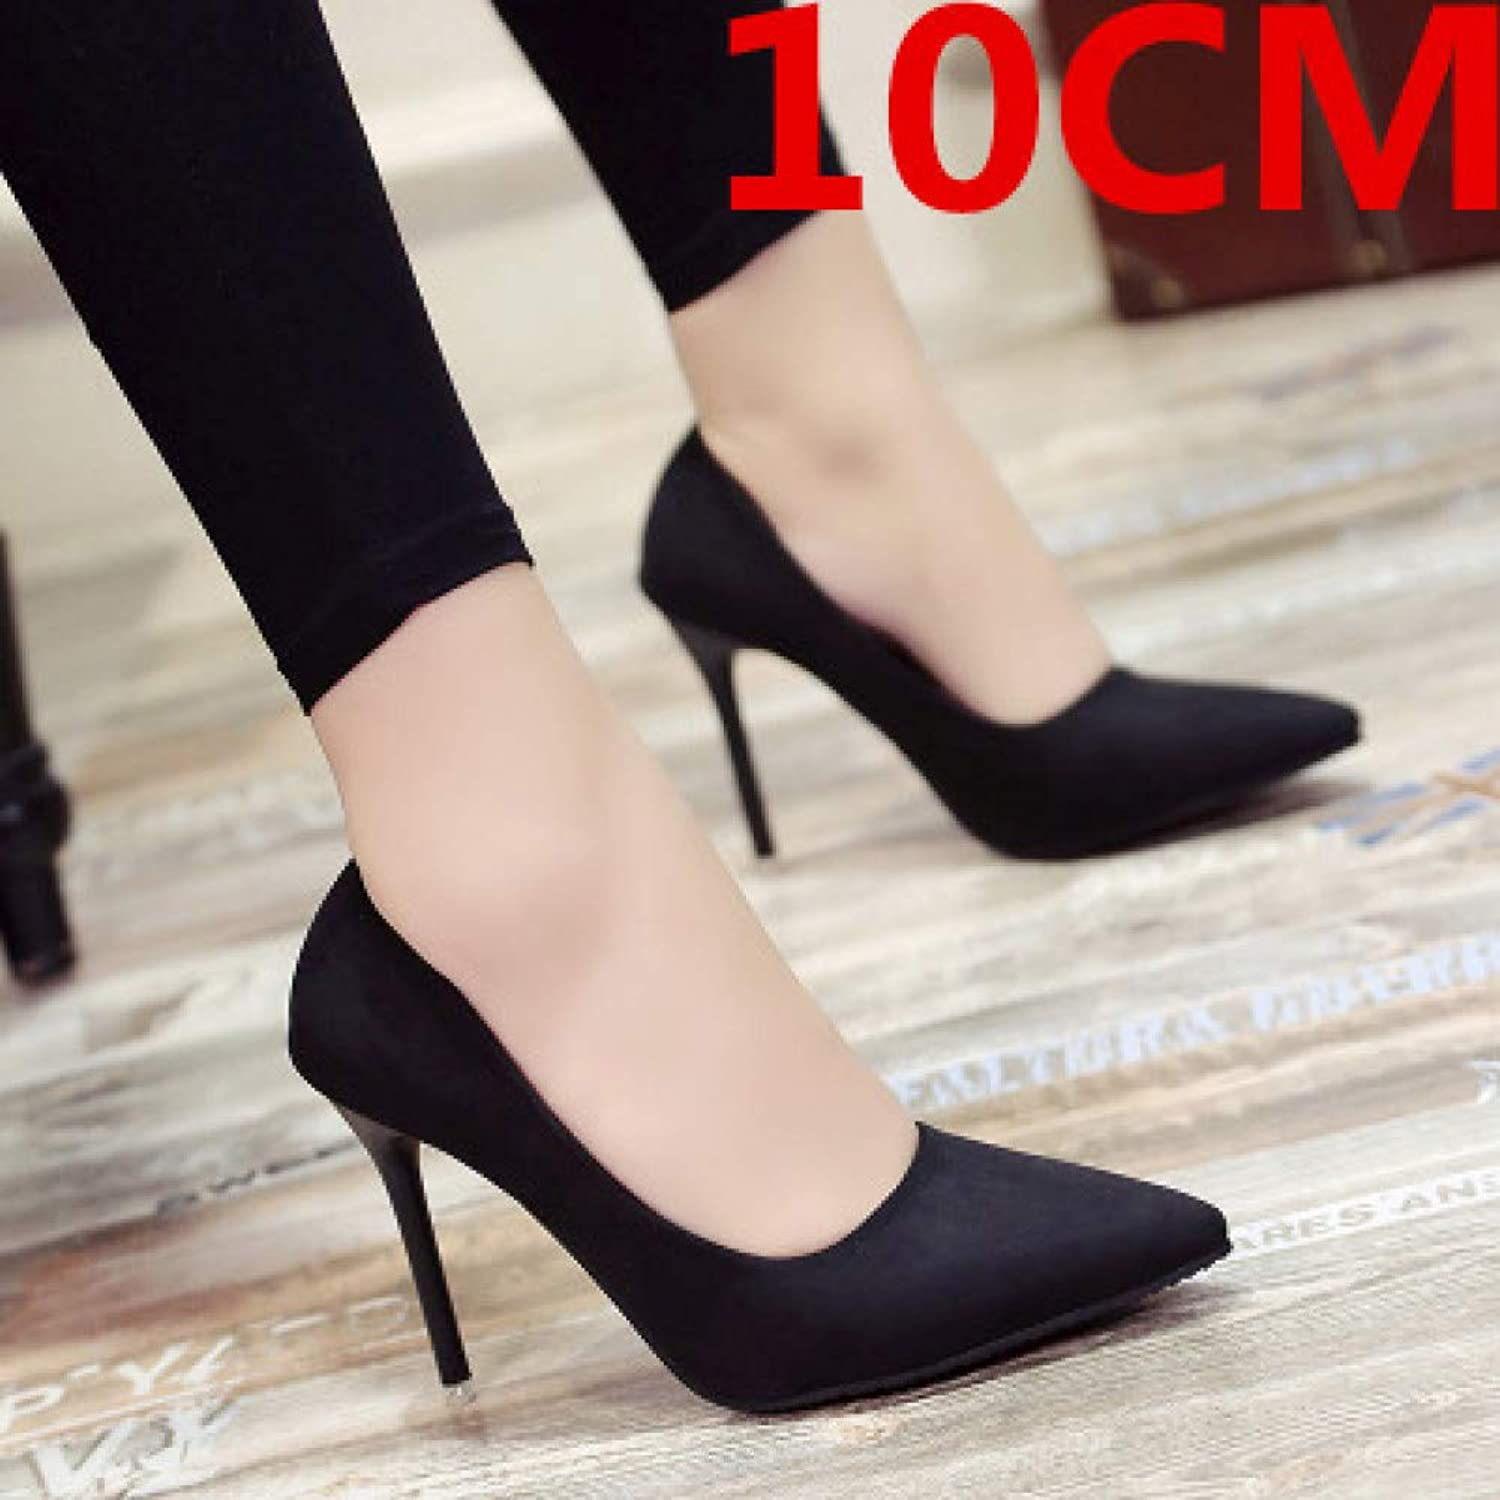 LIHUIYUN shoes New 10cm Black Pointed High Heels Stiletto Shallow Mouth Wild Women's Single shoes Professional Work shoes